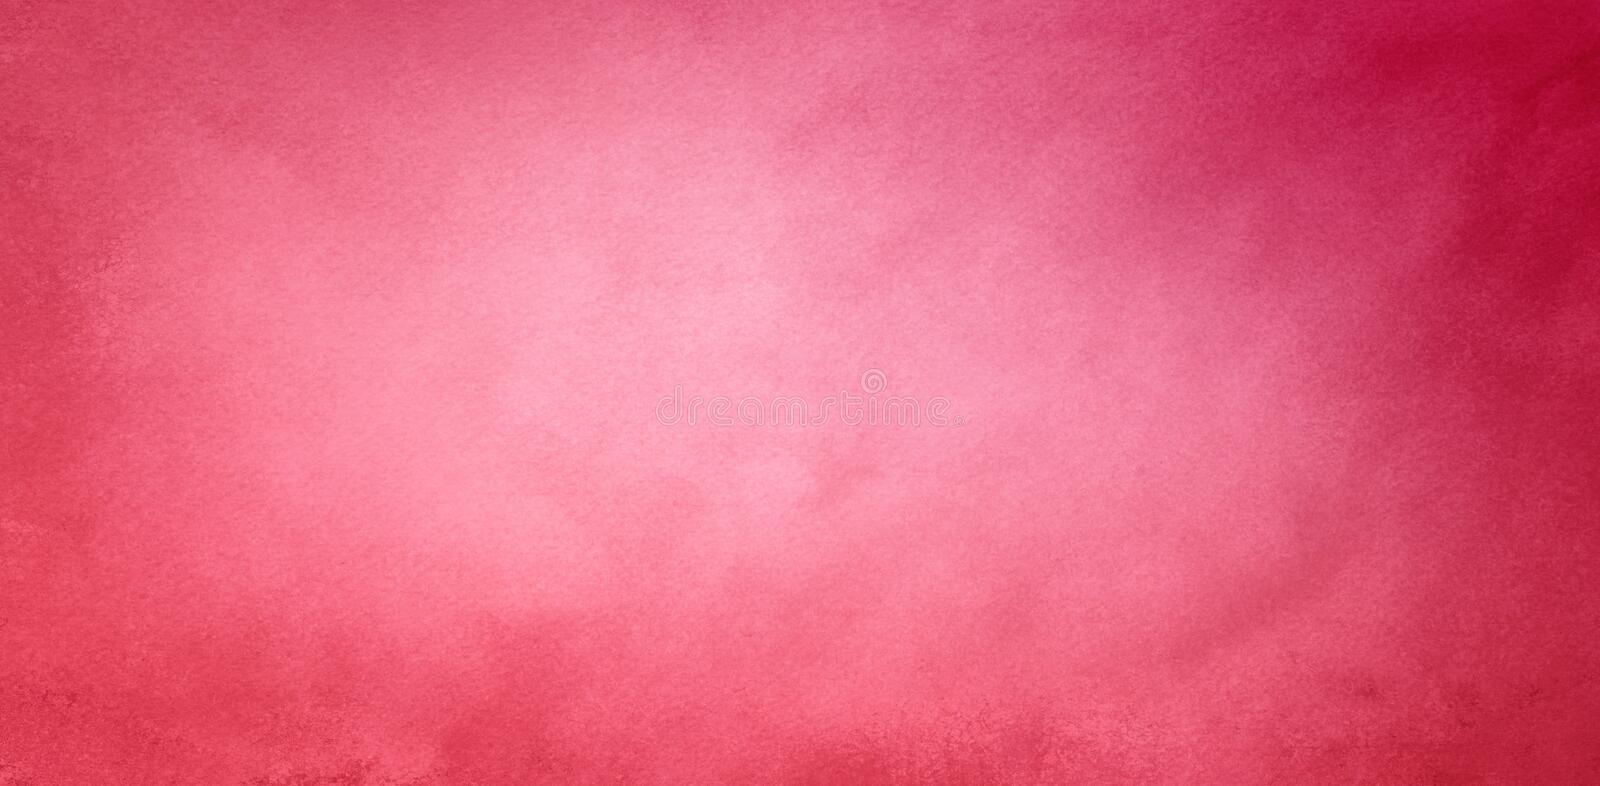 Pretty pink background in soft burgundy mauve and rose pink colors with vintage texture royalty free stock photos